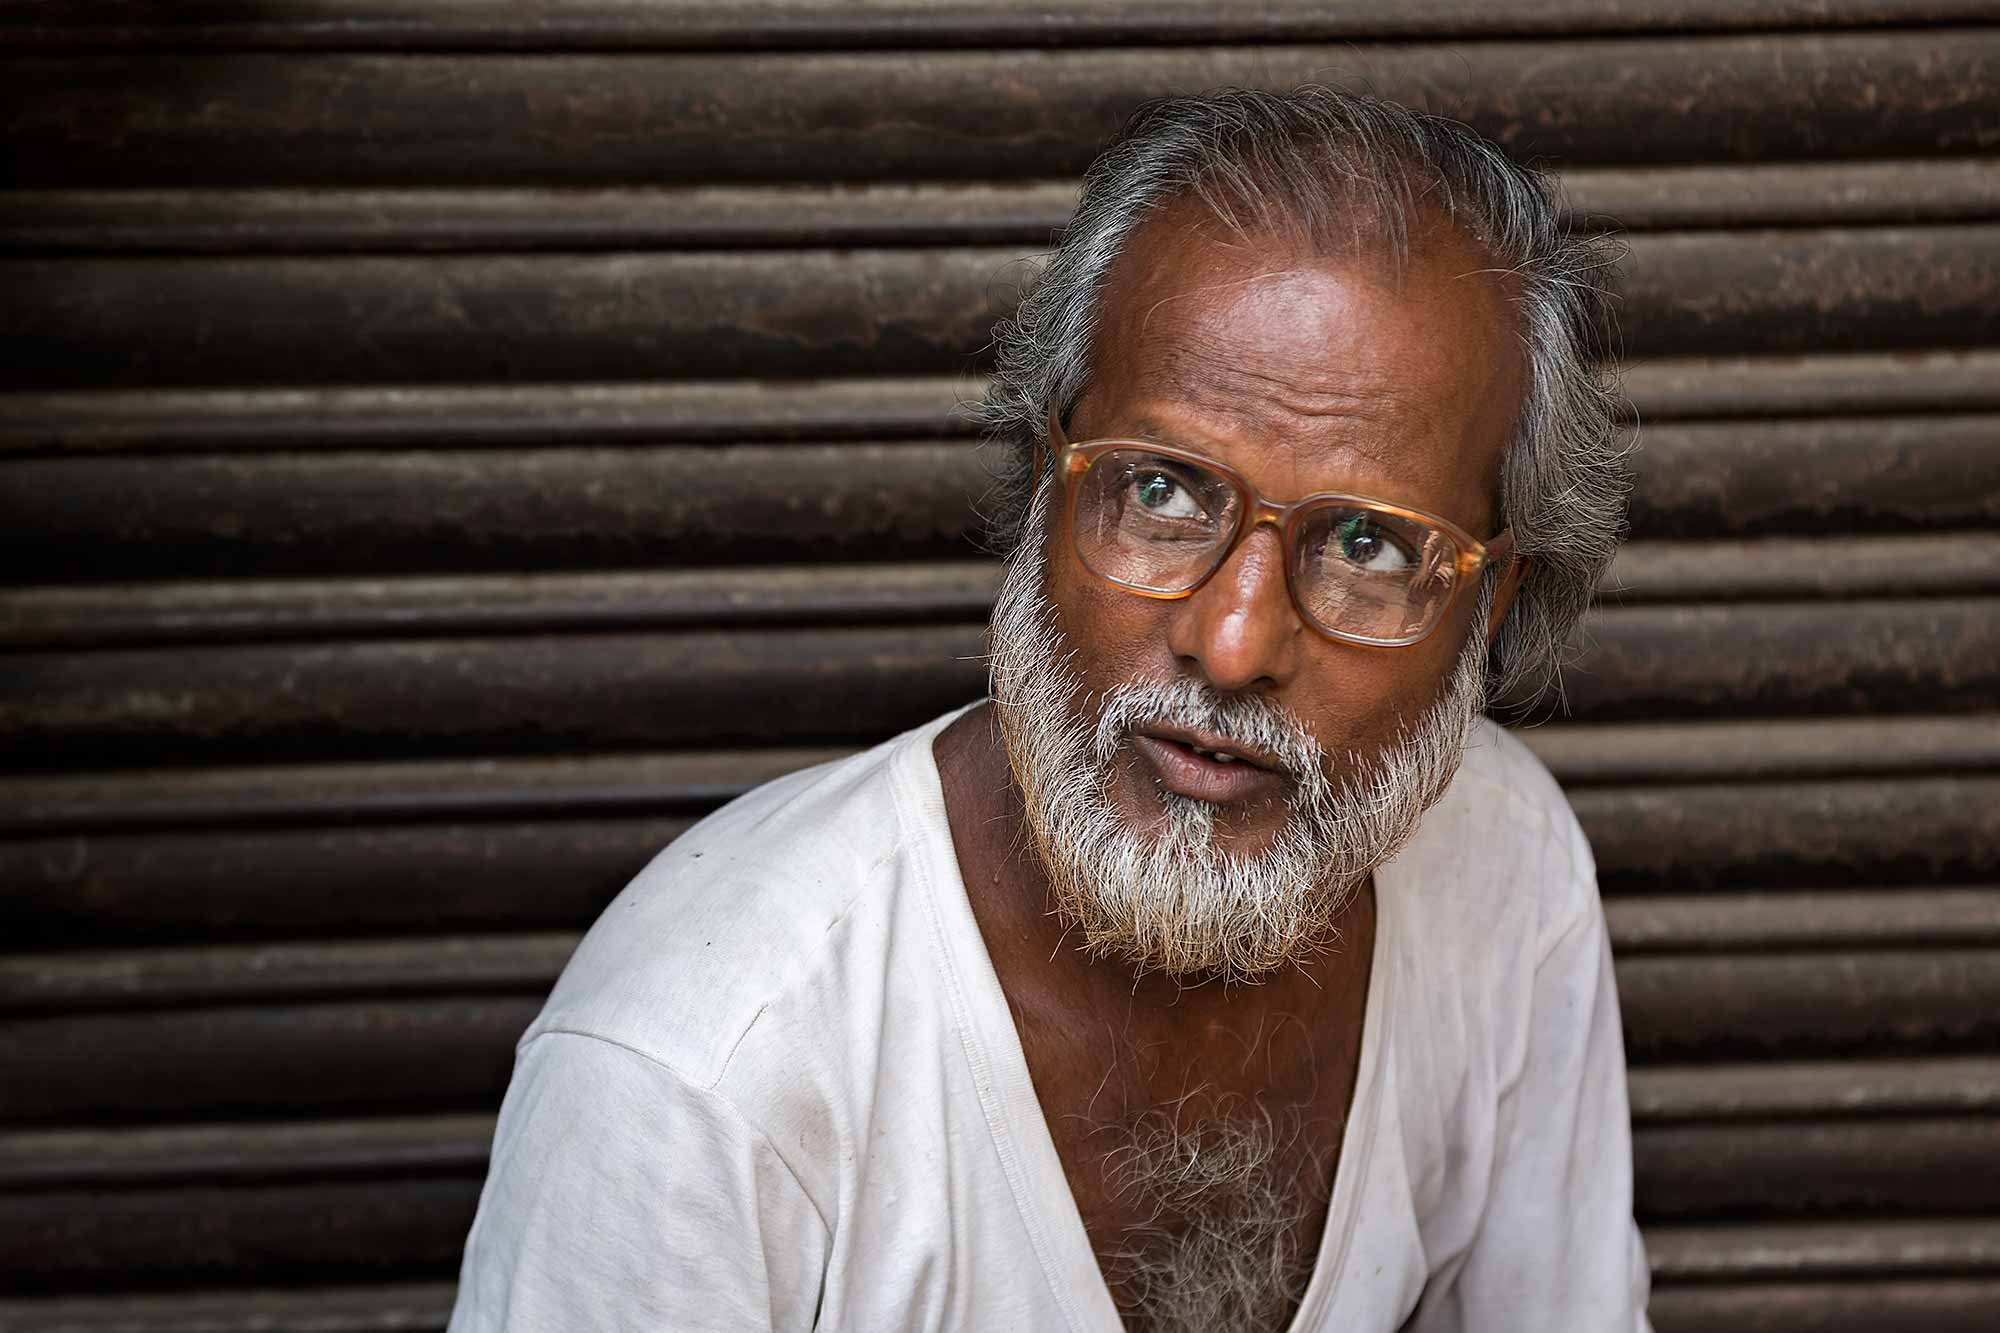 portrait-man-with-glasses-streets-kolkata-west-bengal-india